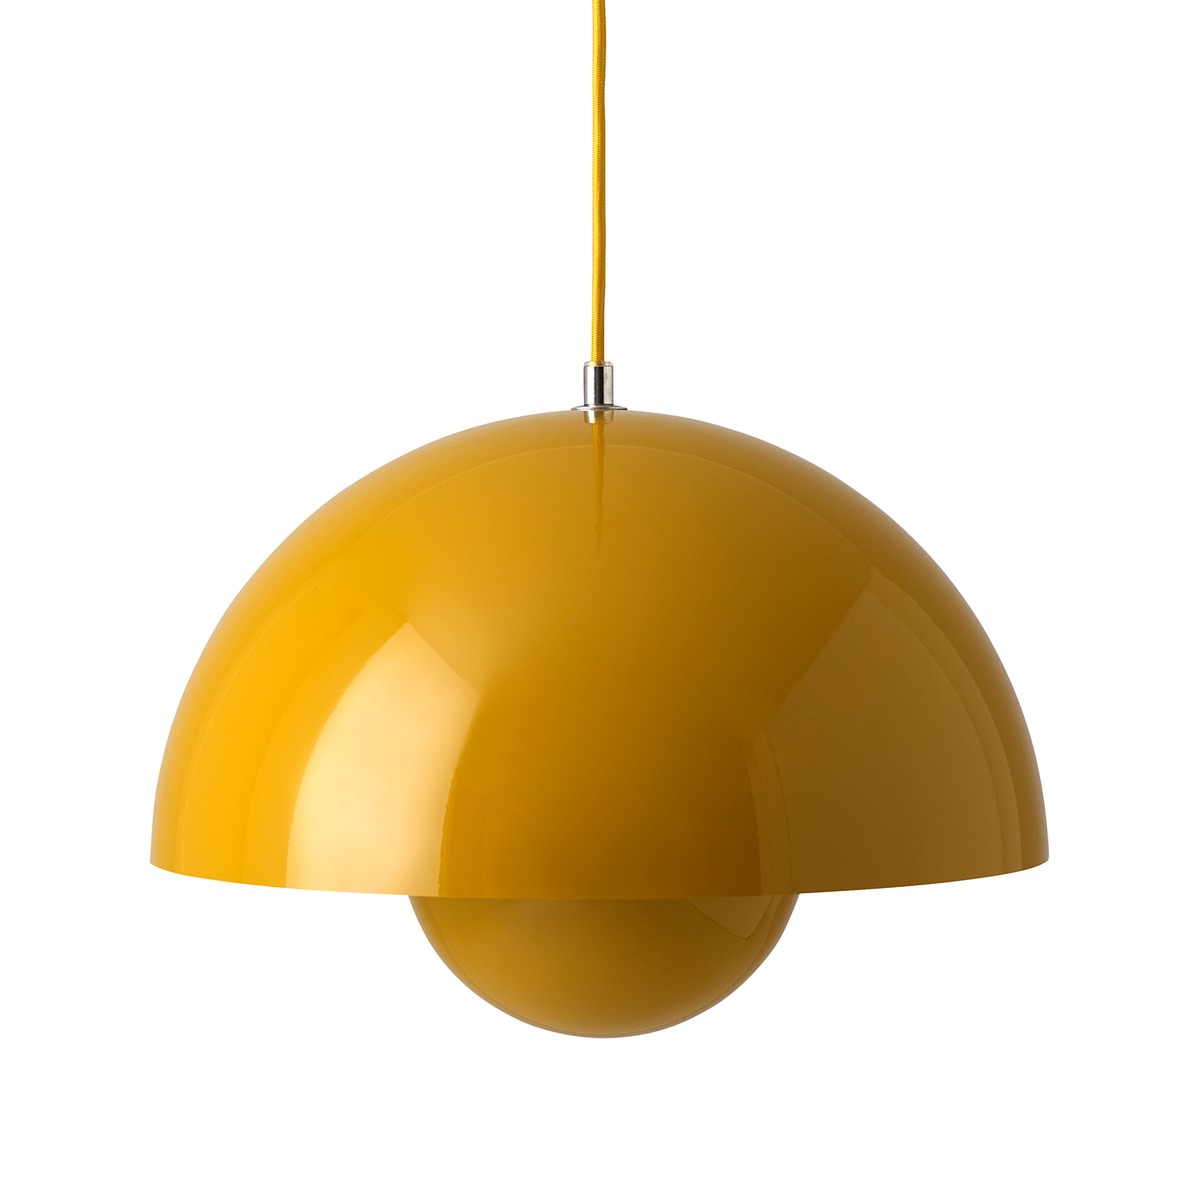 &Tradition Flowerpot VP7 pendant, mustard from &Tradition